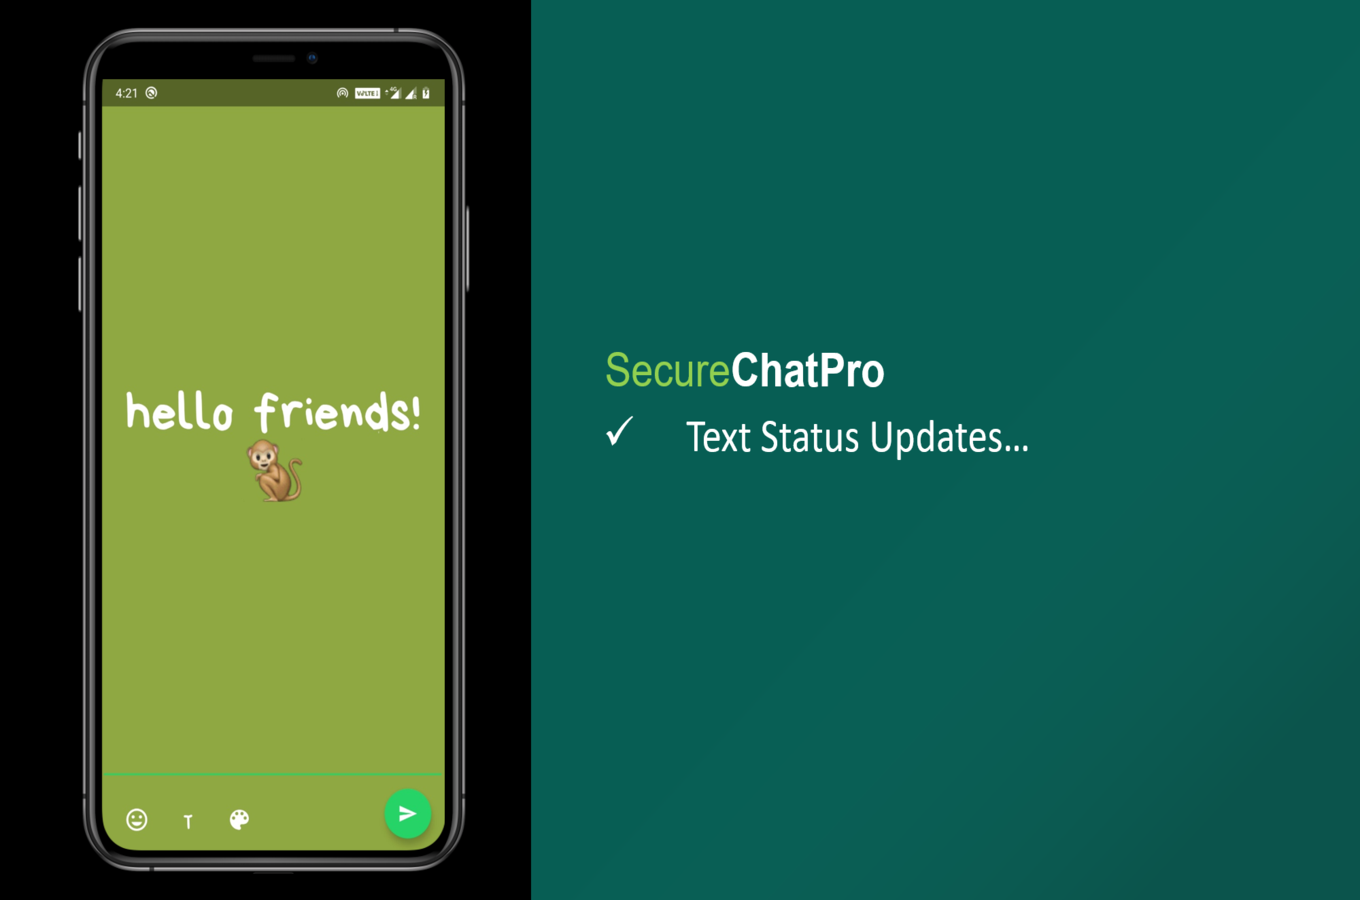 SecureChatPro - A Complete Whatsaap Clone - 7